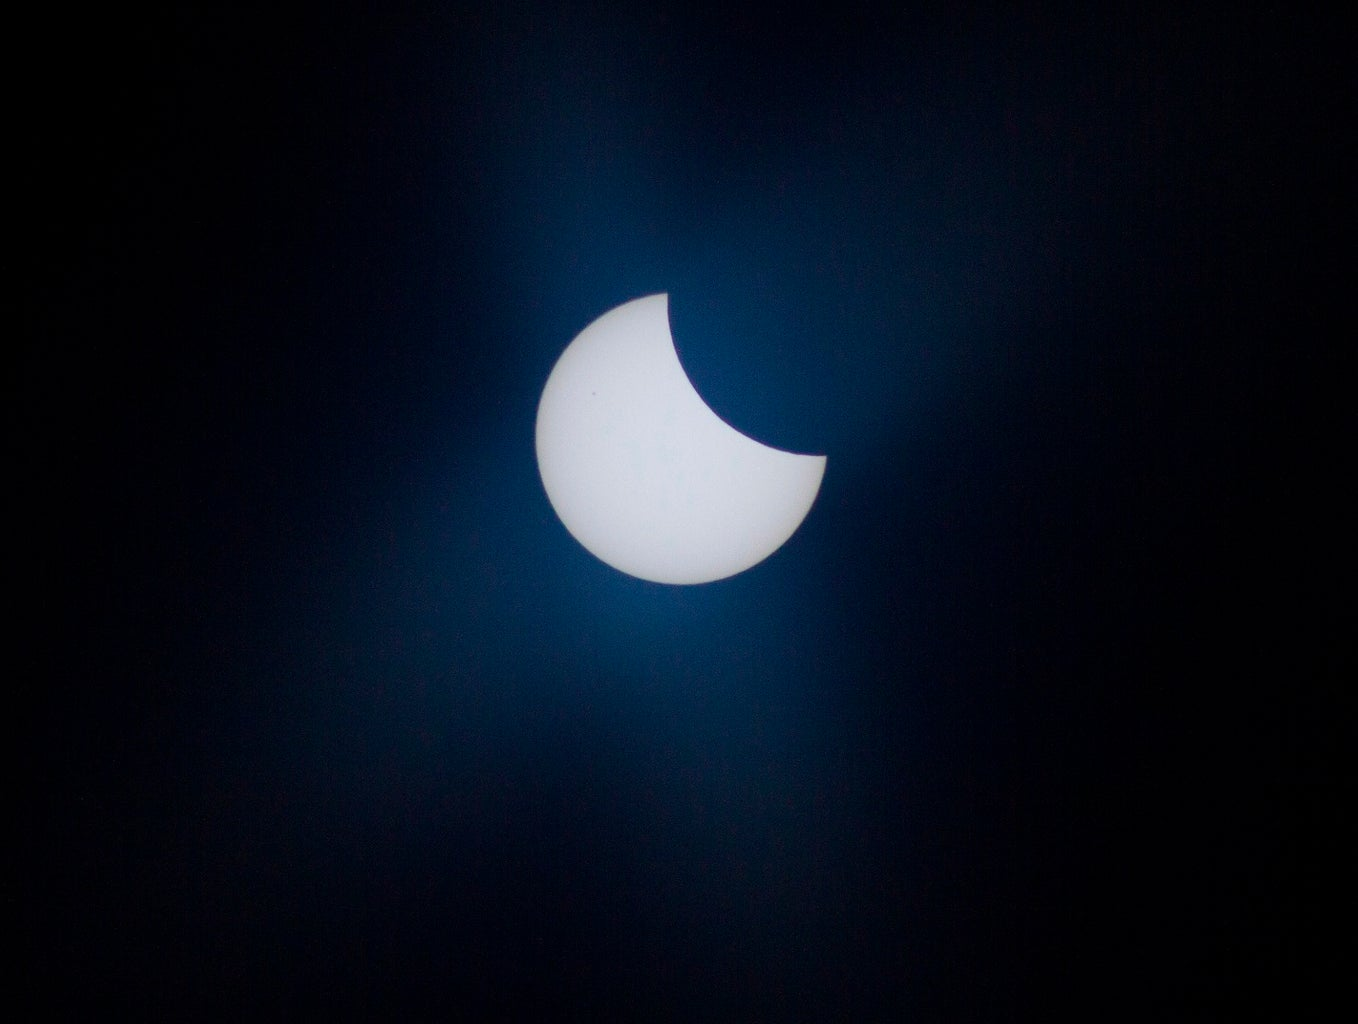 Solar Filter for You and Your DSLR